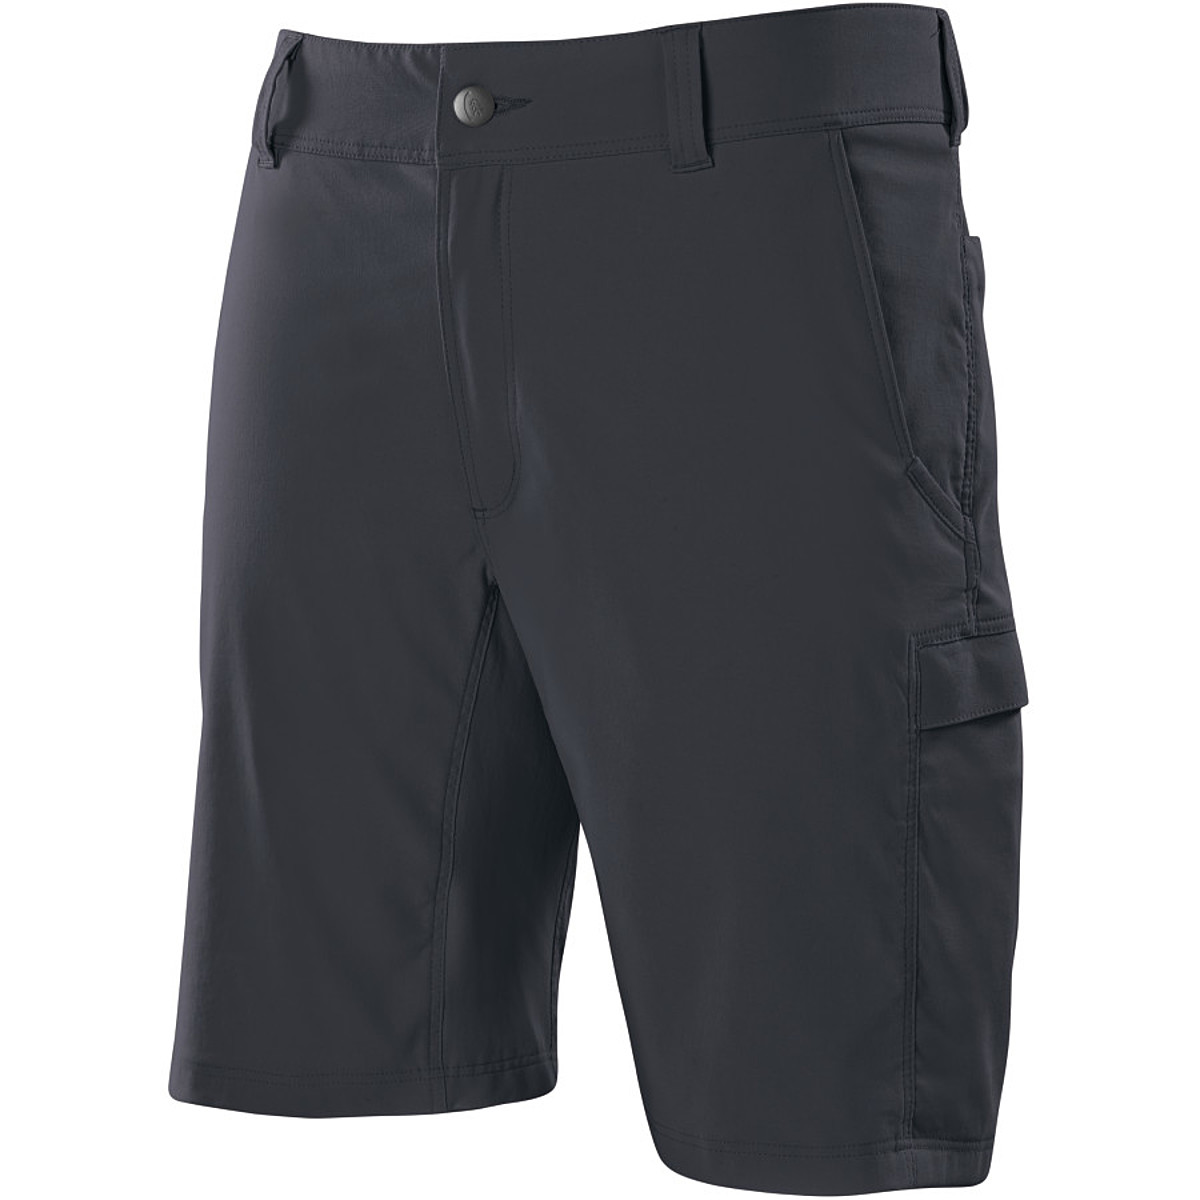 Sierra Designs Silicone Trail Short